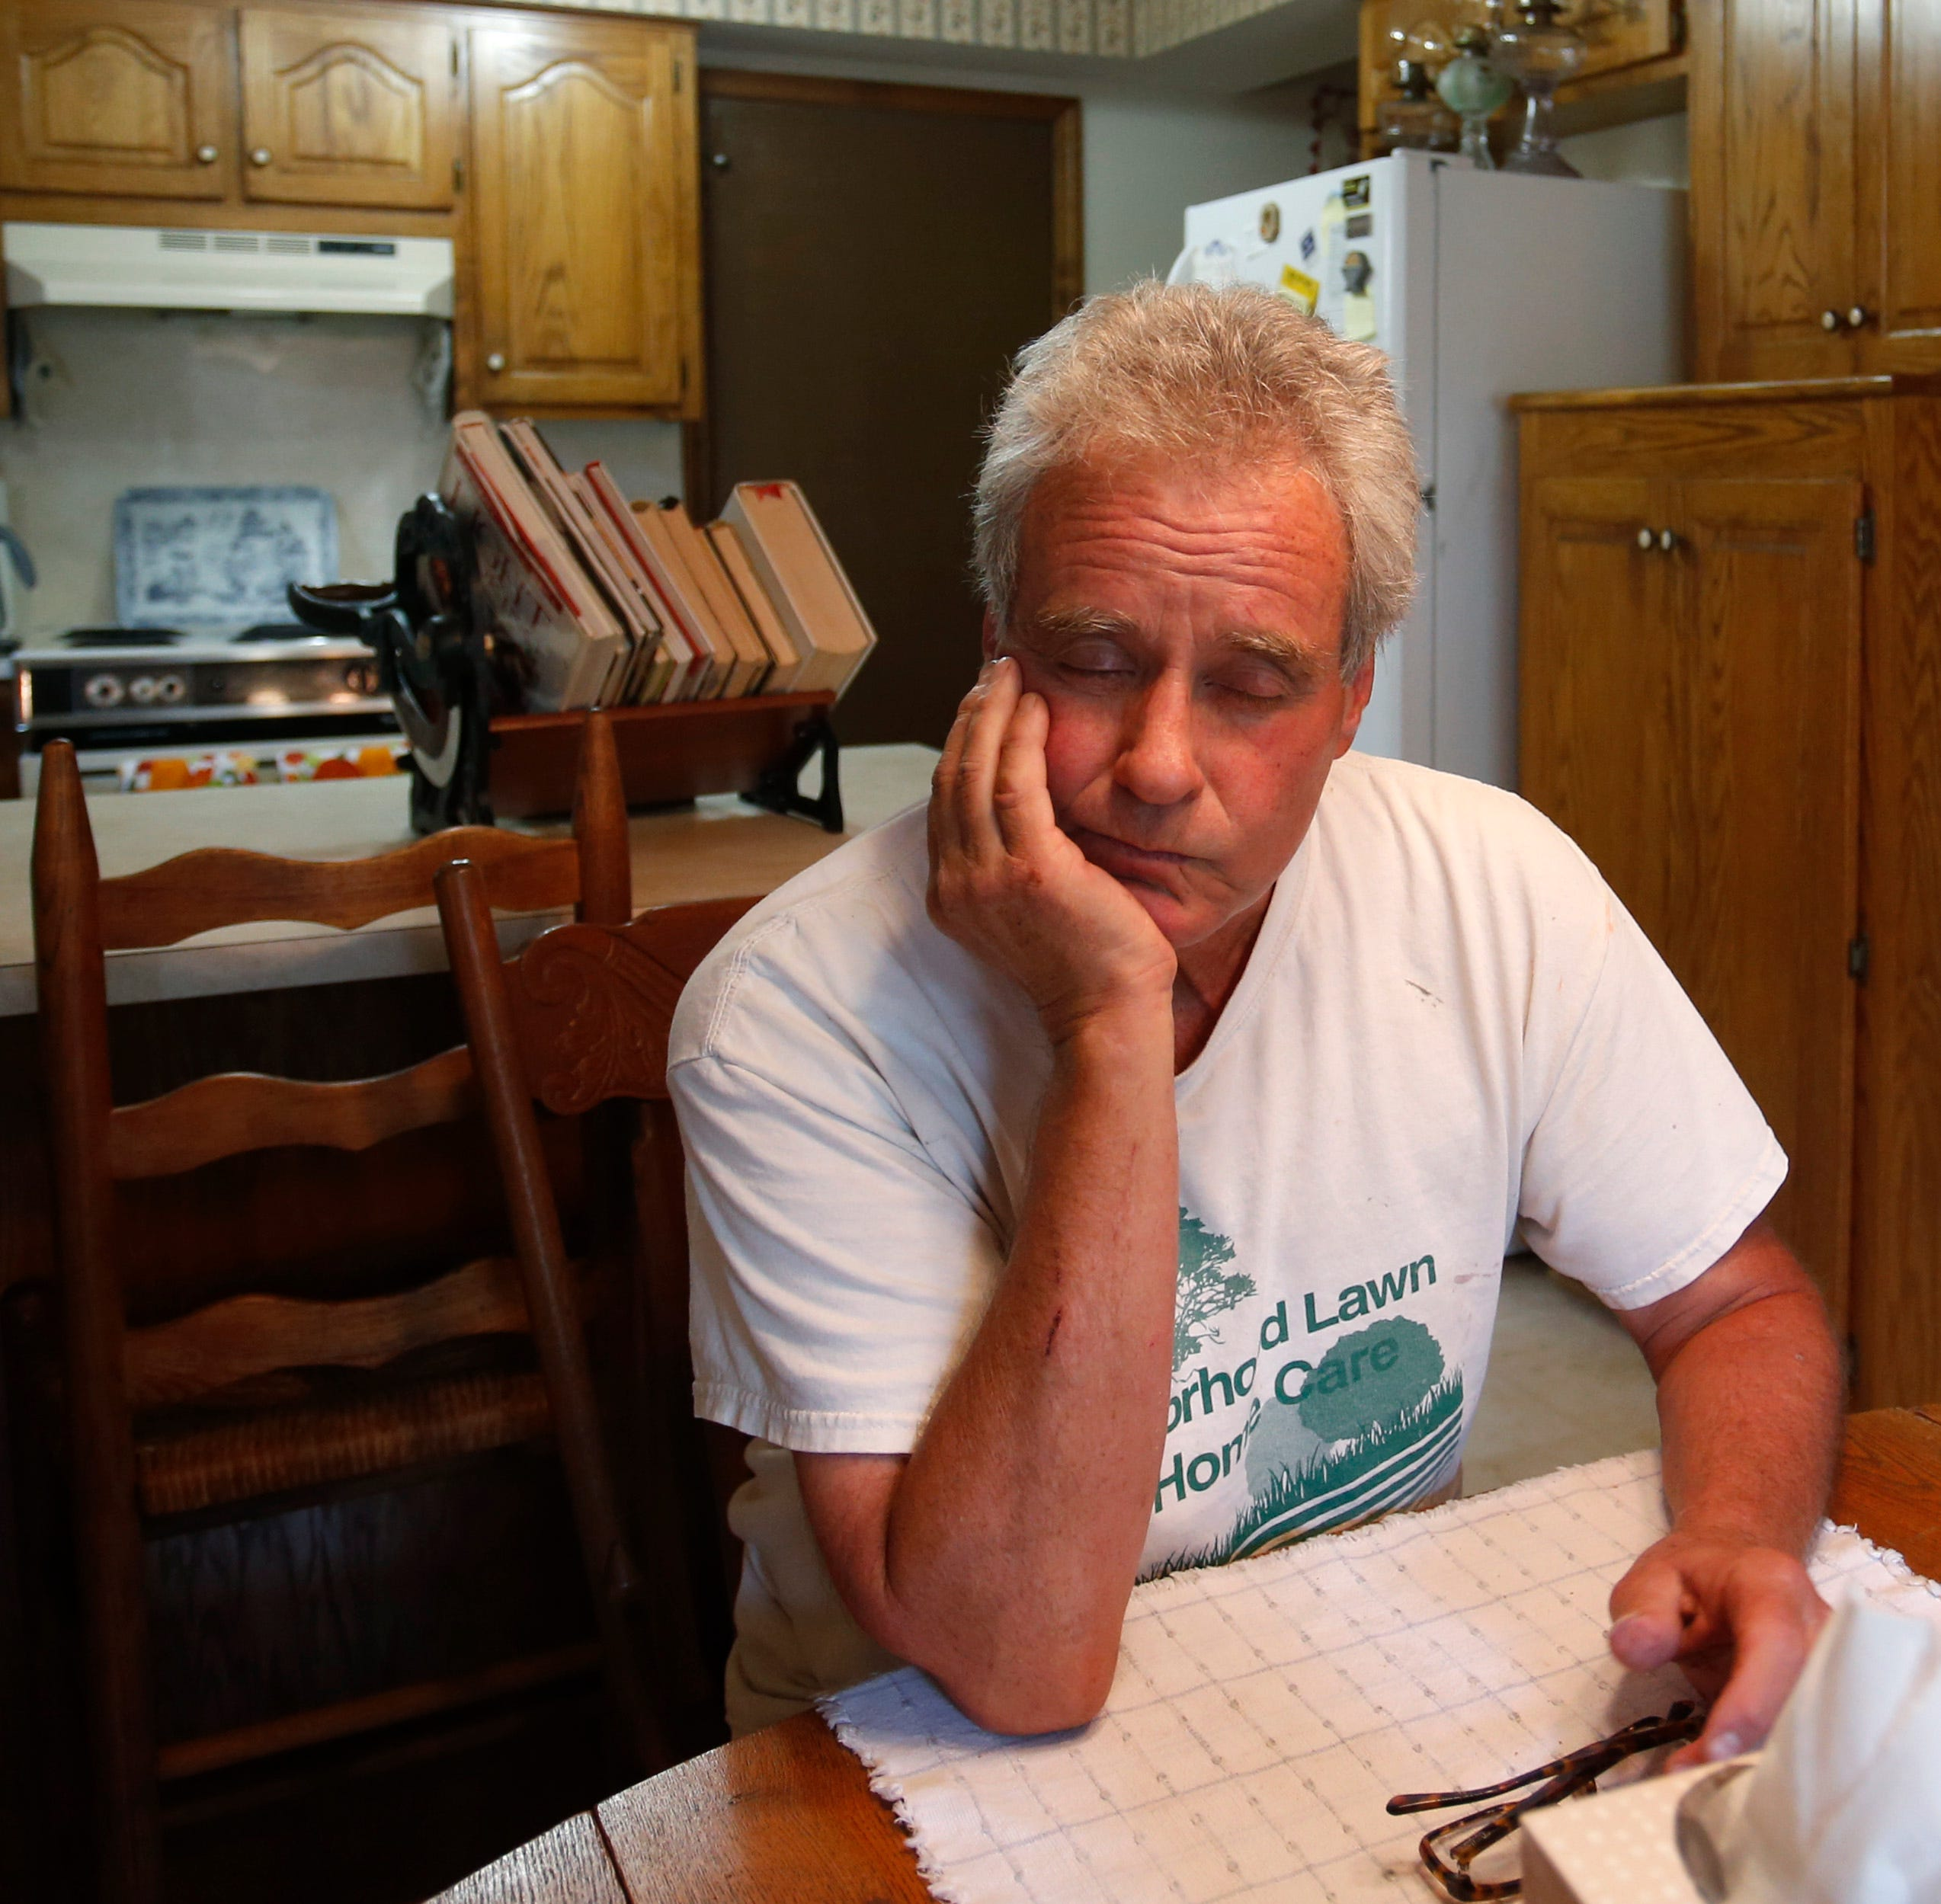 A 66-year-old Springfield man had his safe stolen. There was $100K inside.